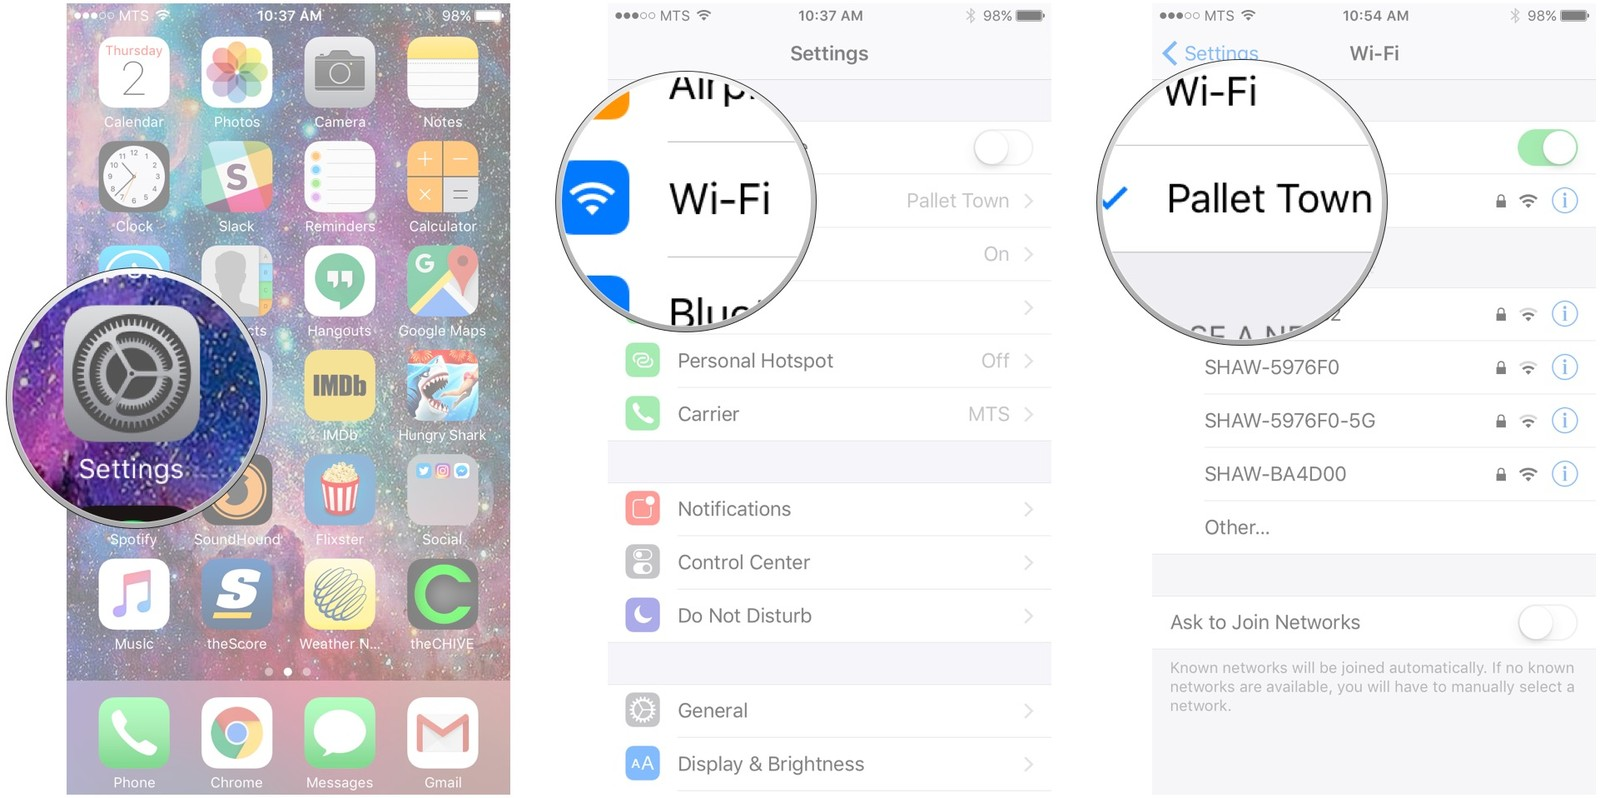 Launch Settings, tap Wi-Fi, tap your network